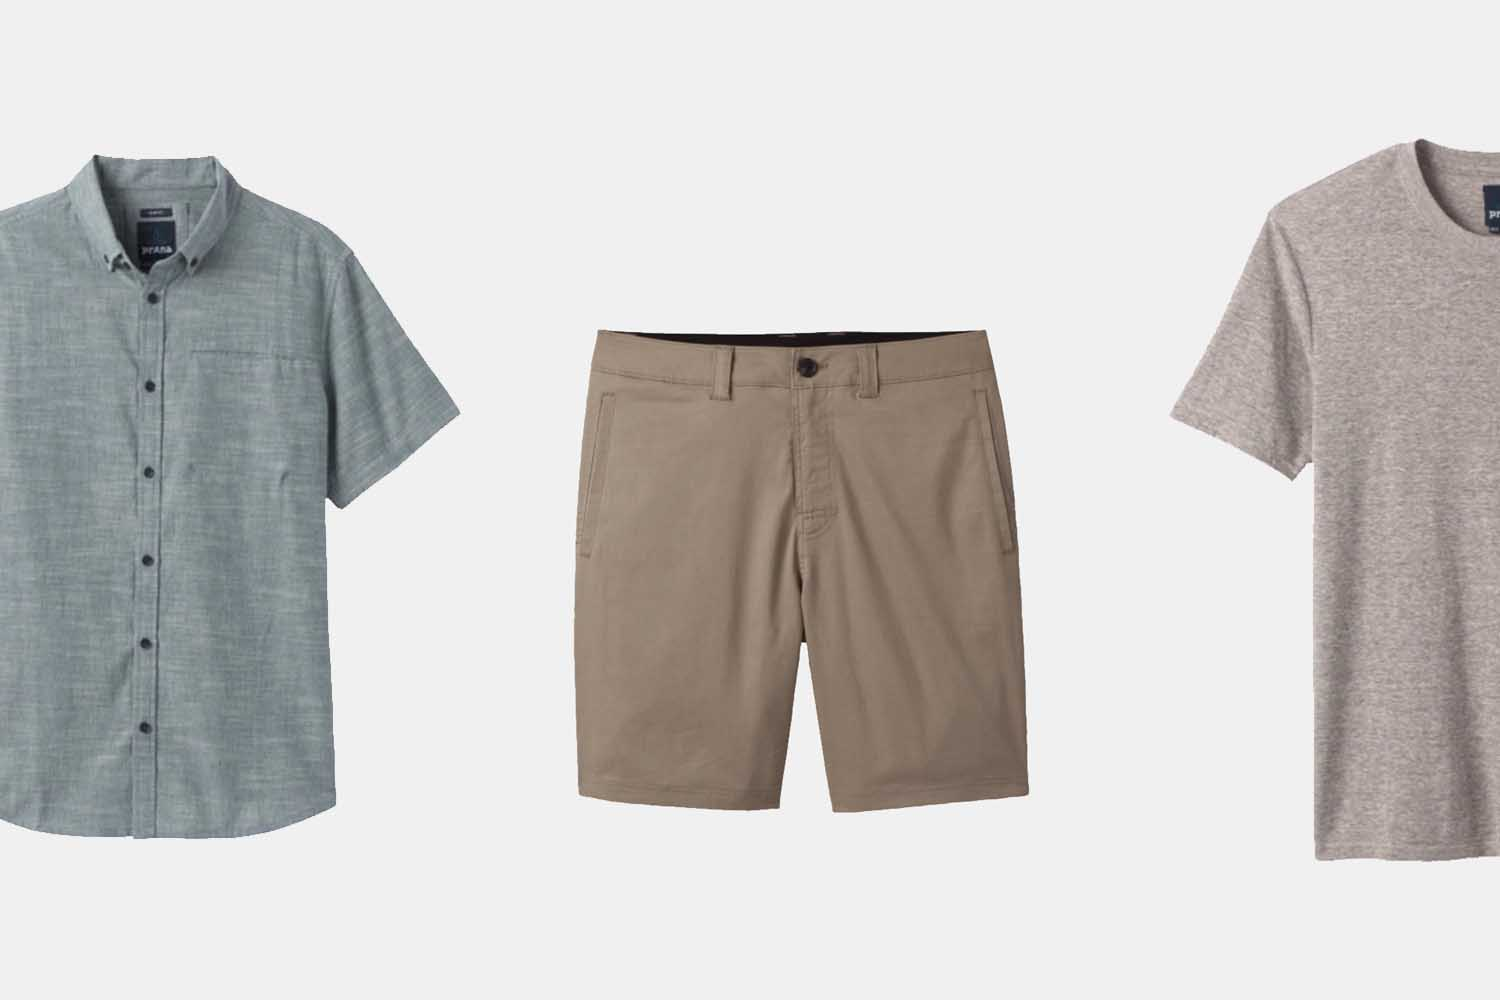 Deal: Save Up to 50% During PrAna's End-of-Season Sale